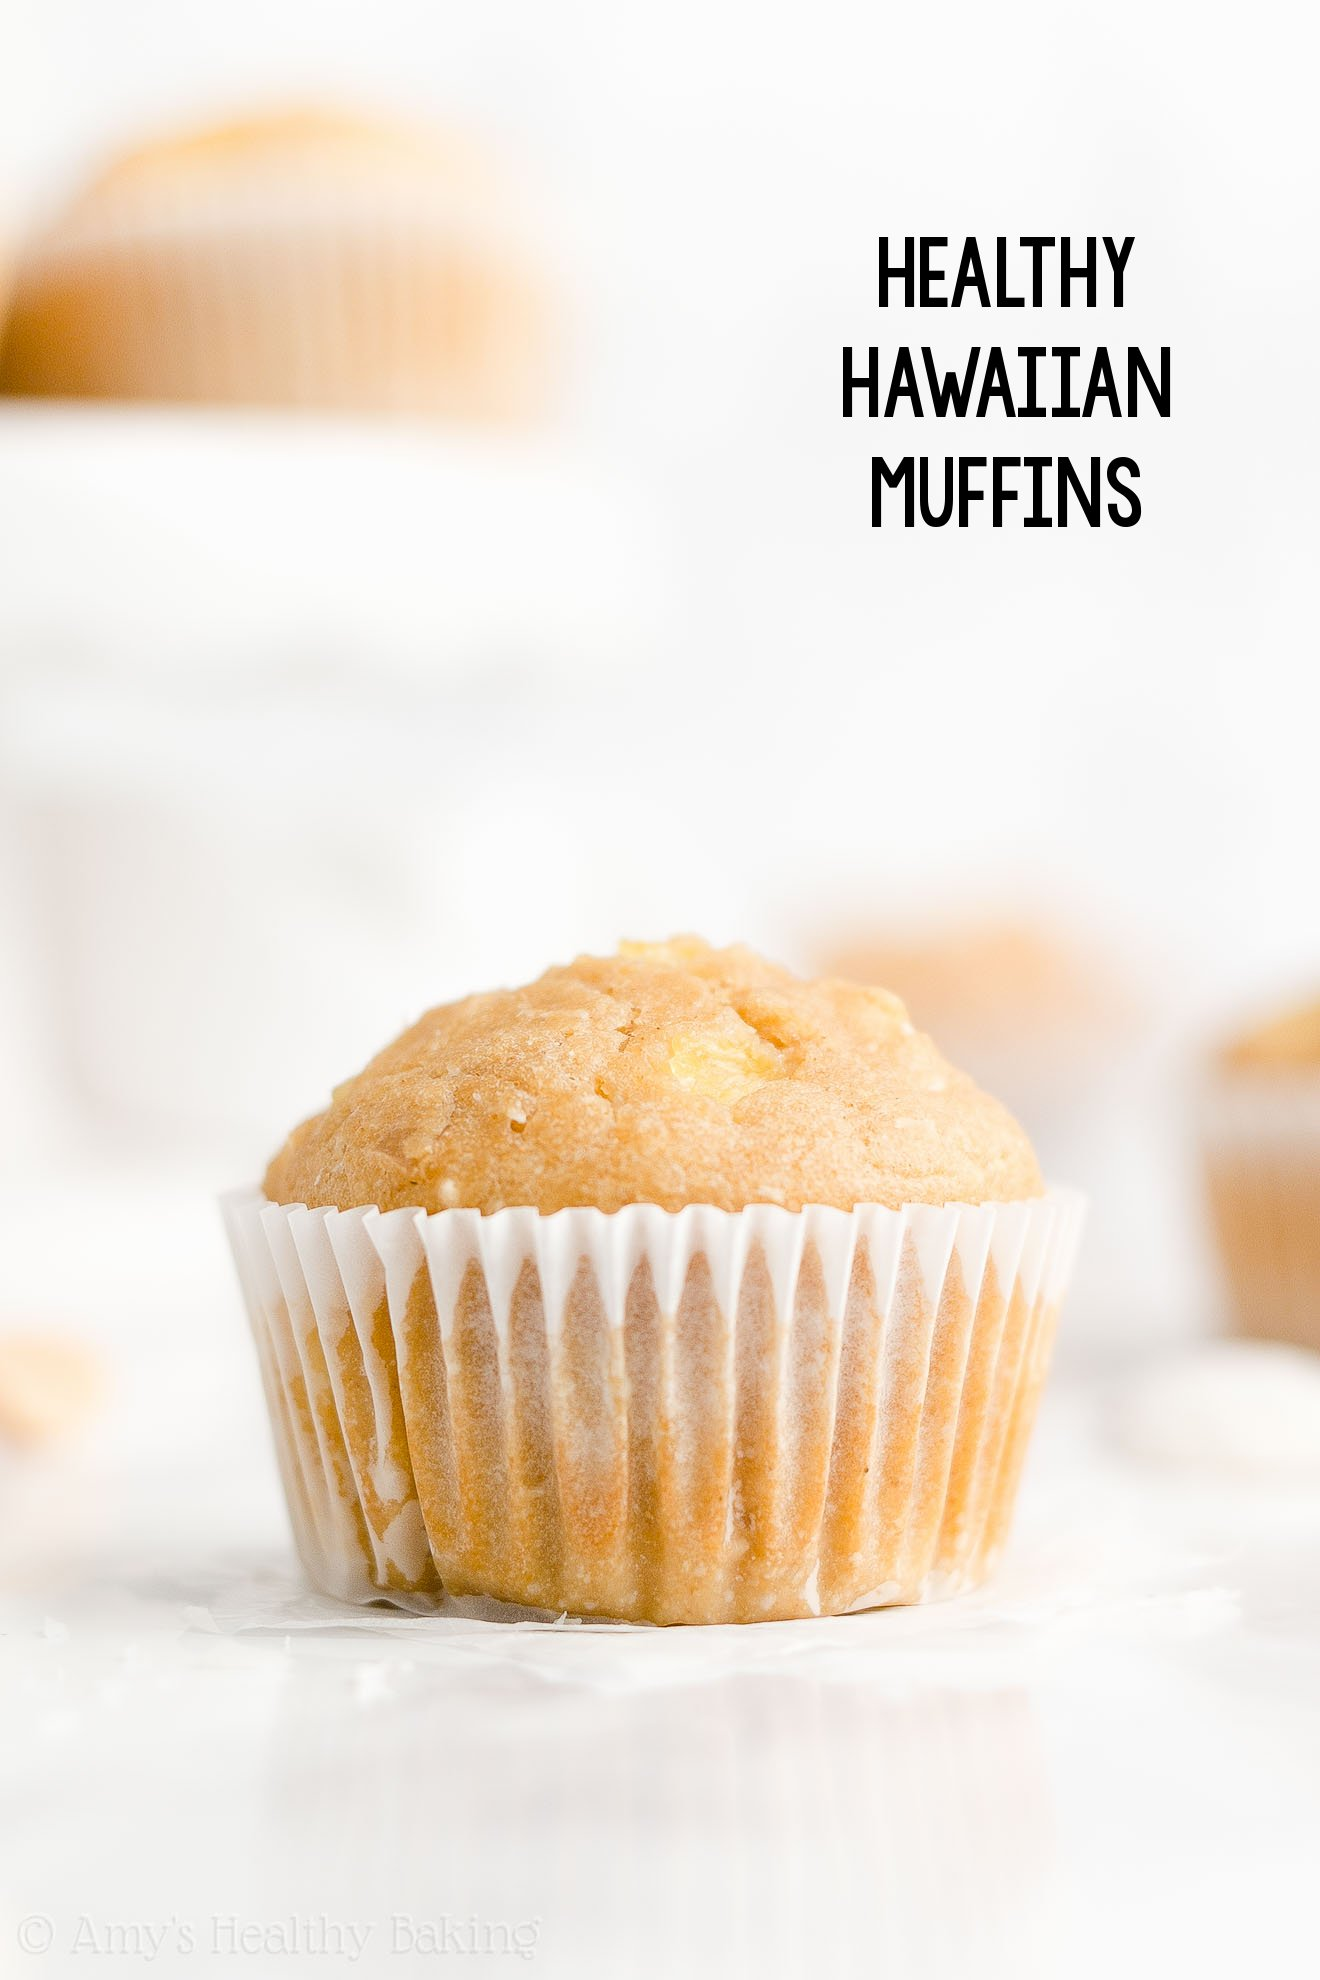 Best Healthy Greek Yogurt Tropical Pineapple, Coconut & Macadamia Nut Muffins